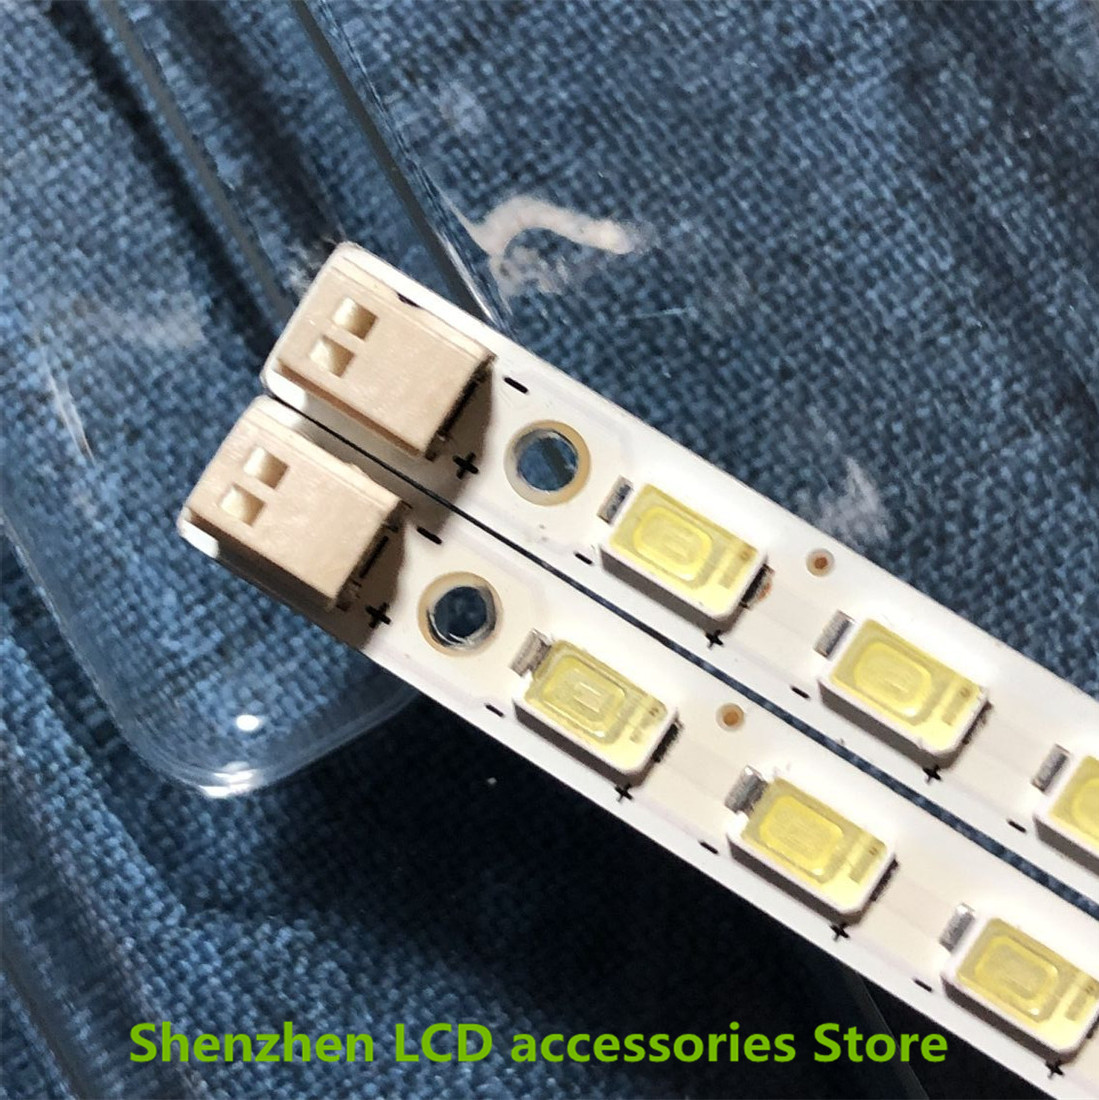 2Pieces/lot   For Toshiba 40BF1C LCD backlit TV lamp strip LJ64-02267A/02268A with screen LTA400HF16    56LED   453MM